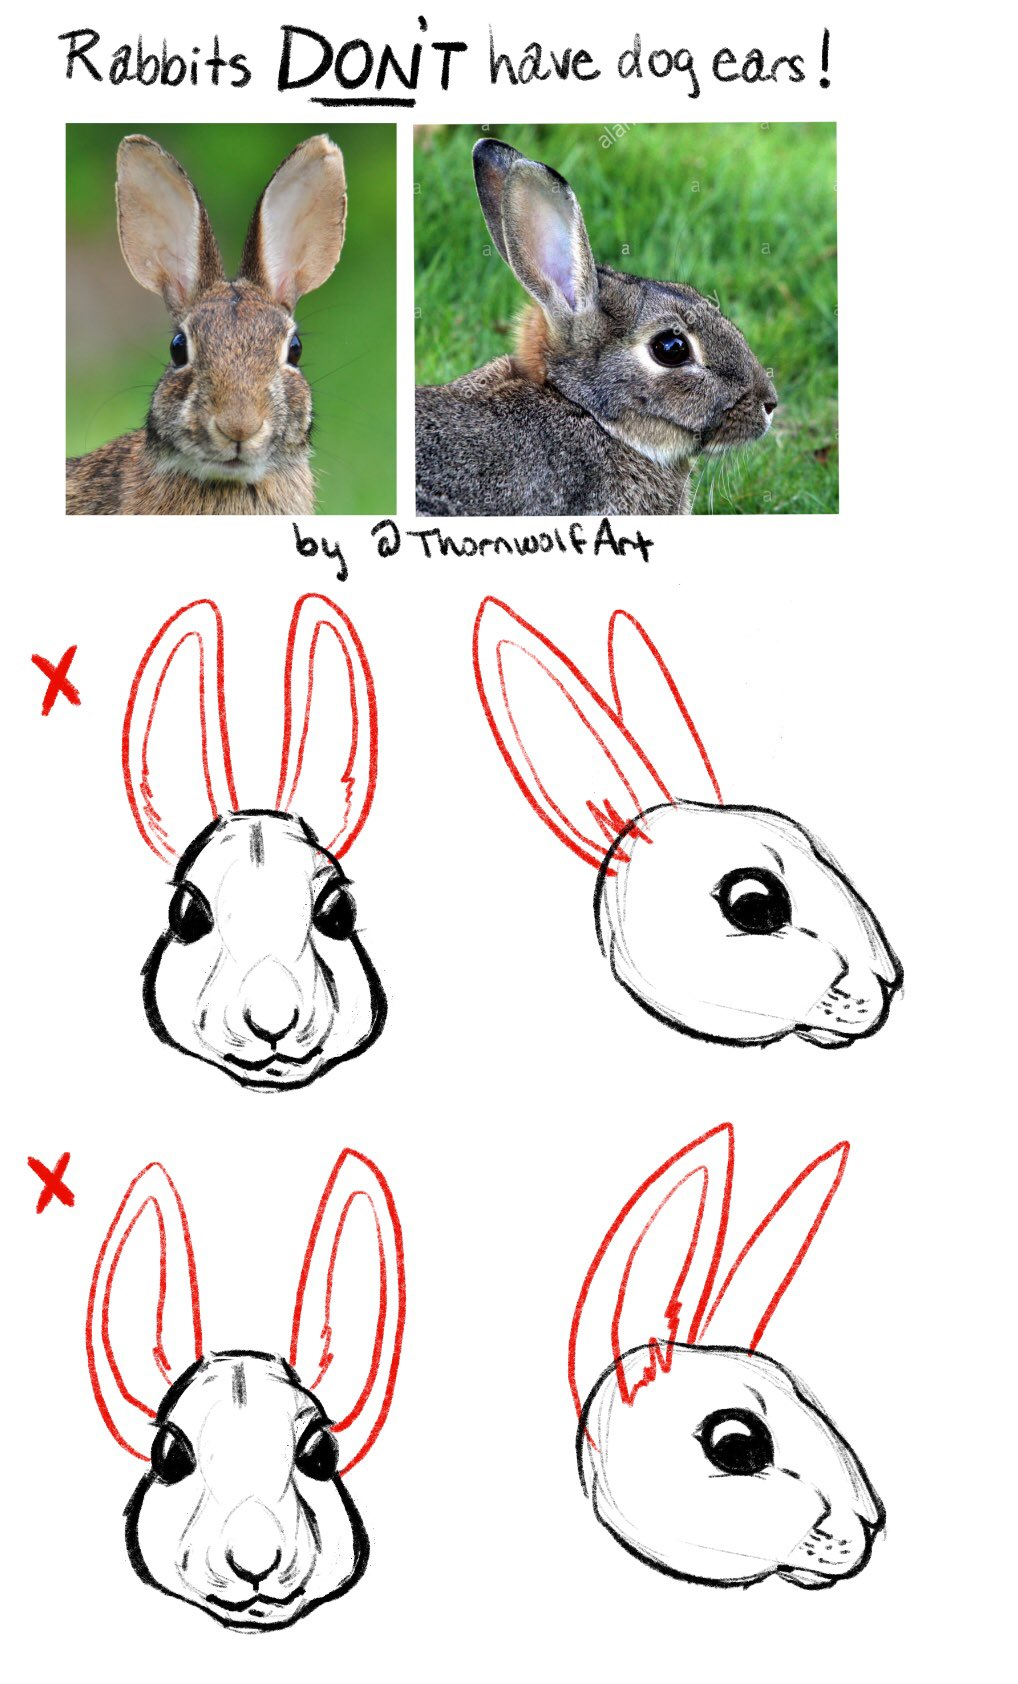 Even if they don't look like dog ears to you, they sure as heck aren't rabbit ears!